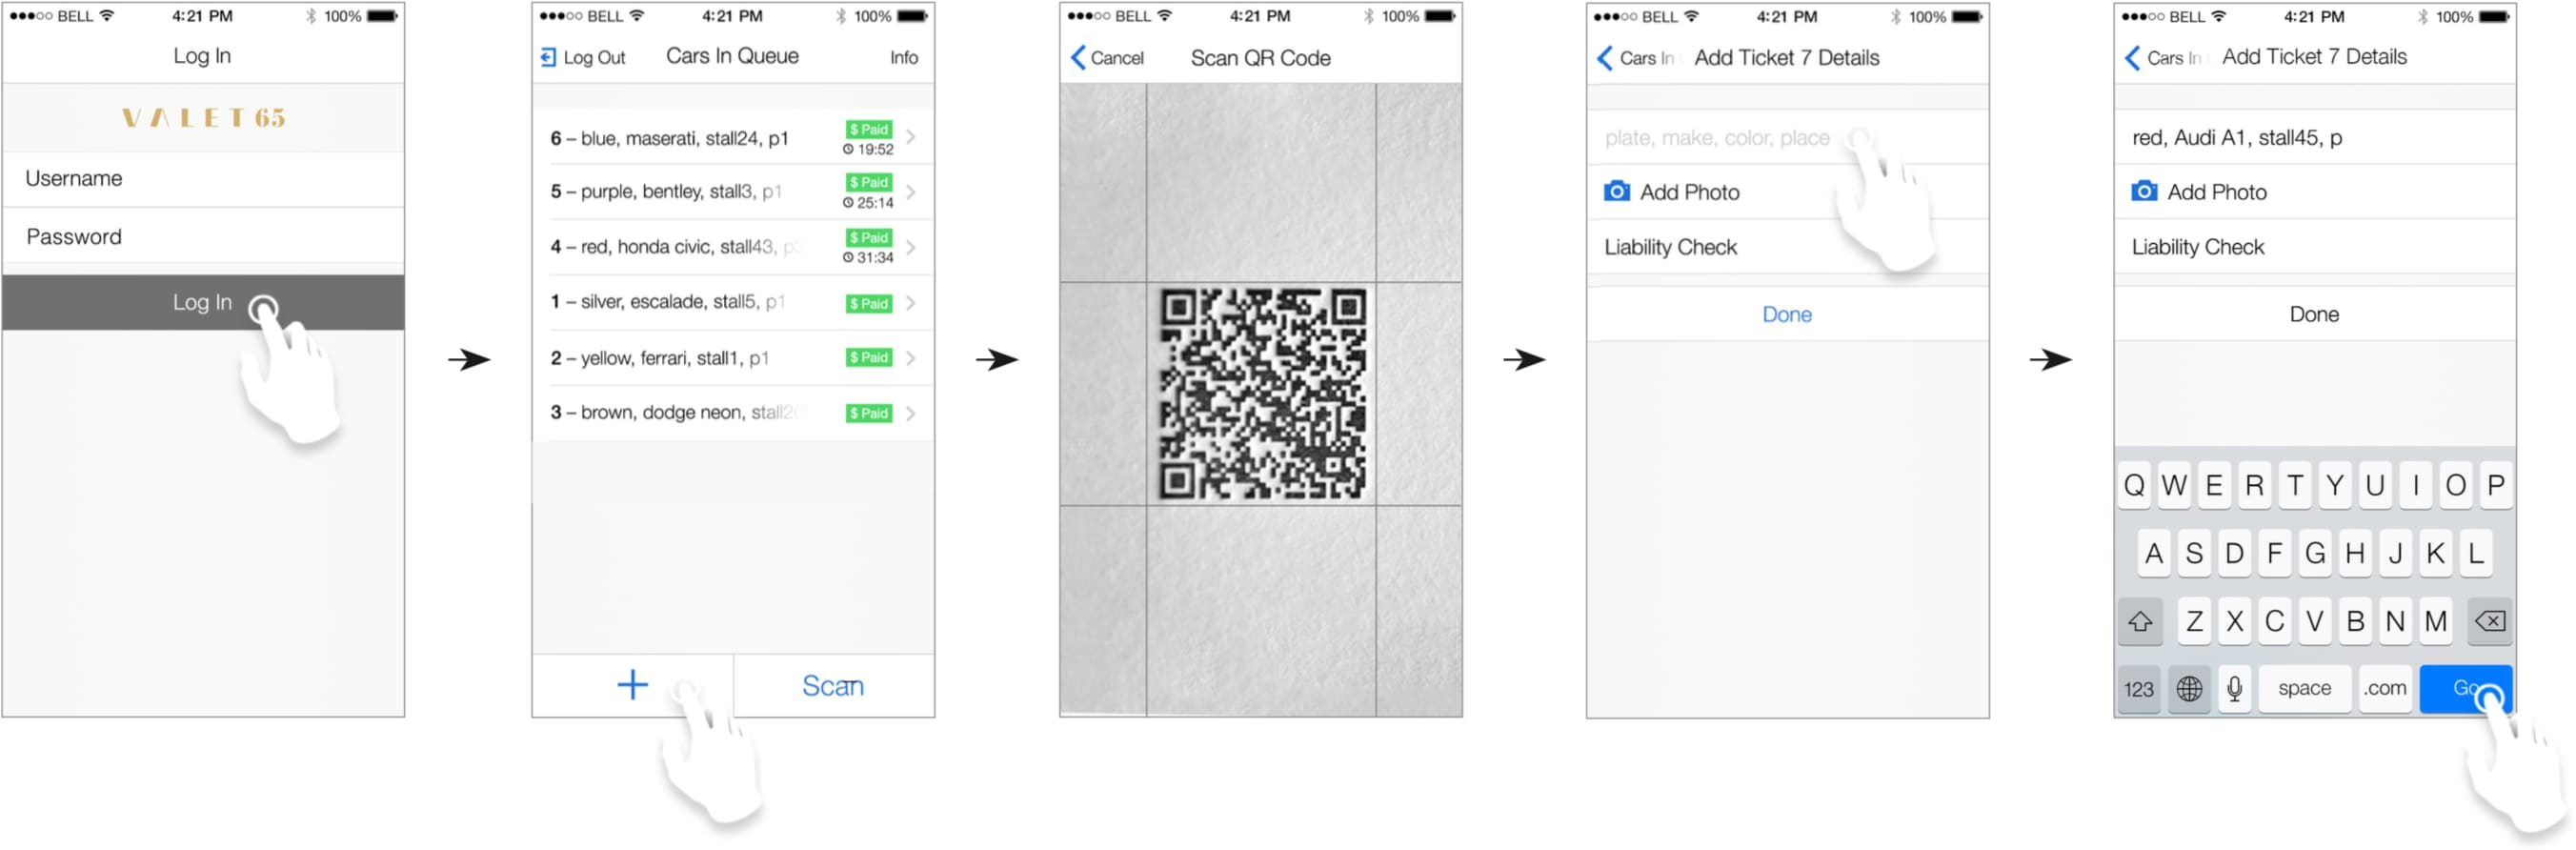 Wireframe of company ticket scanner